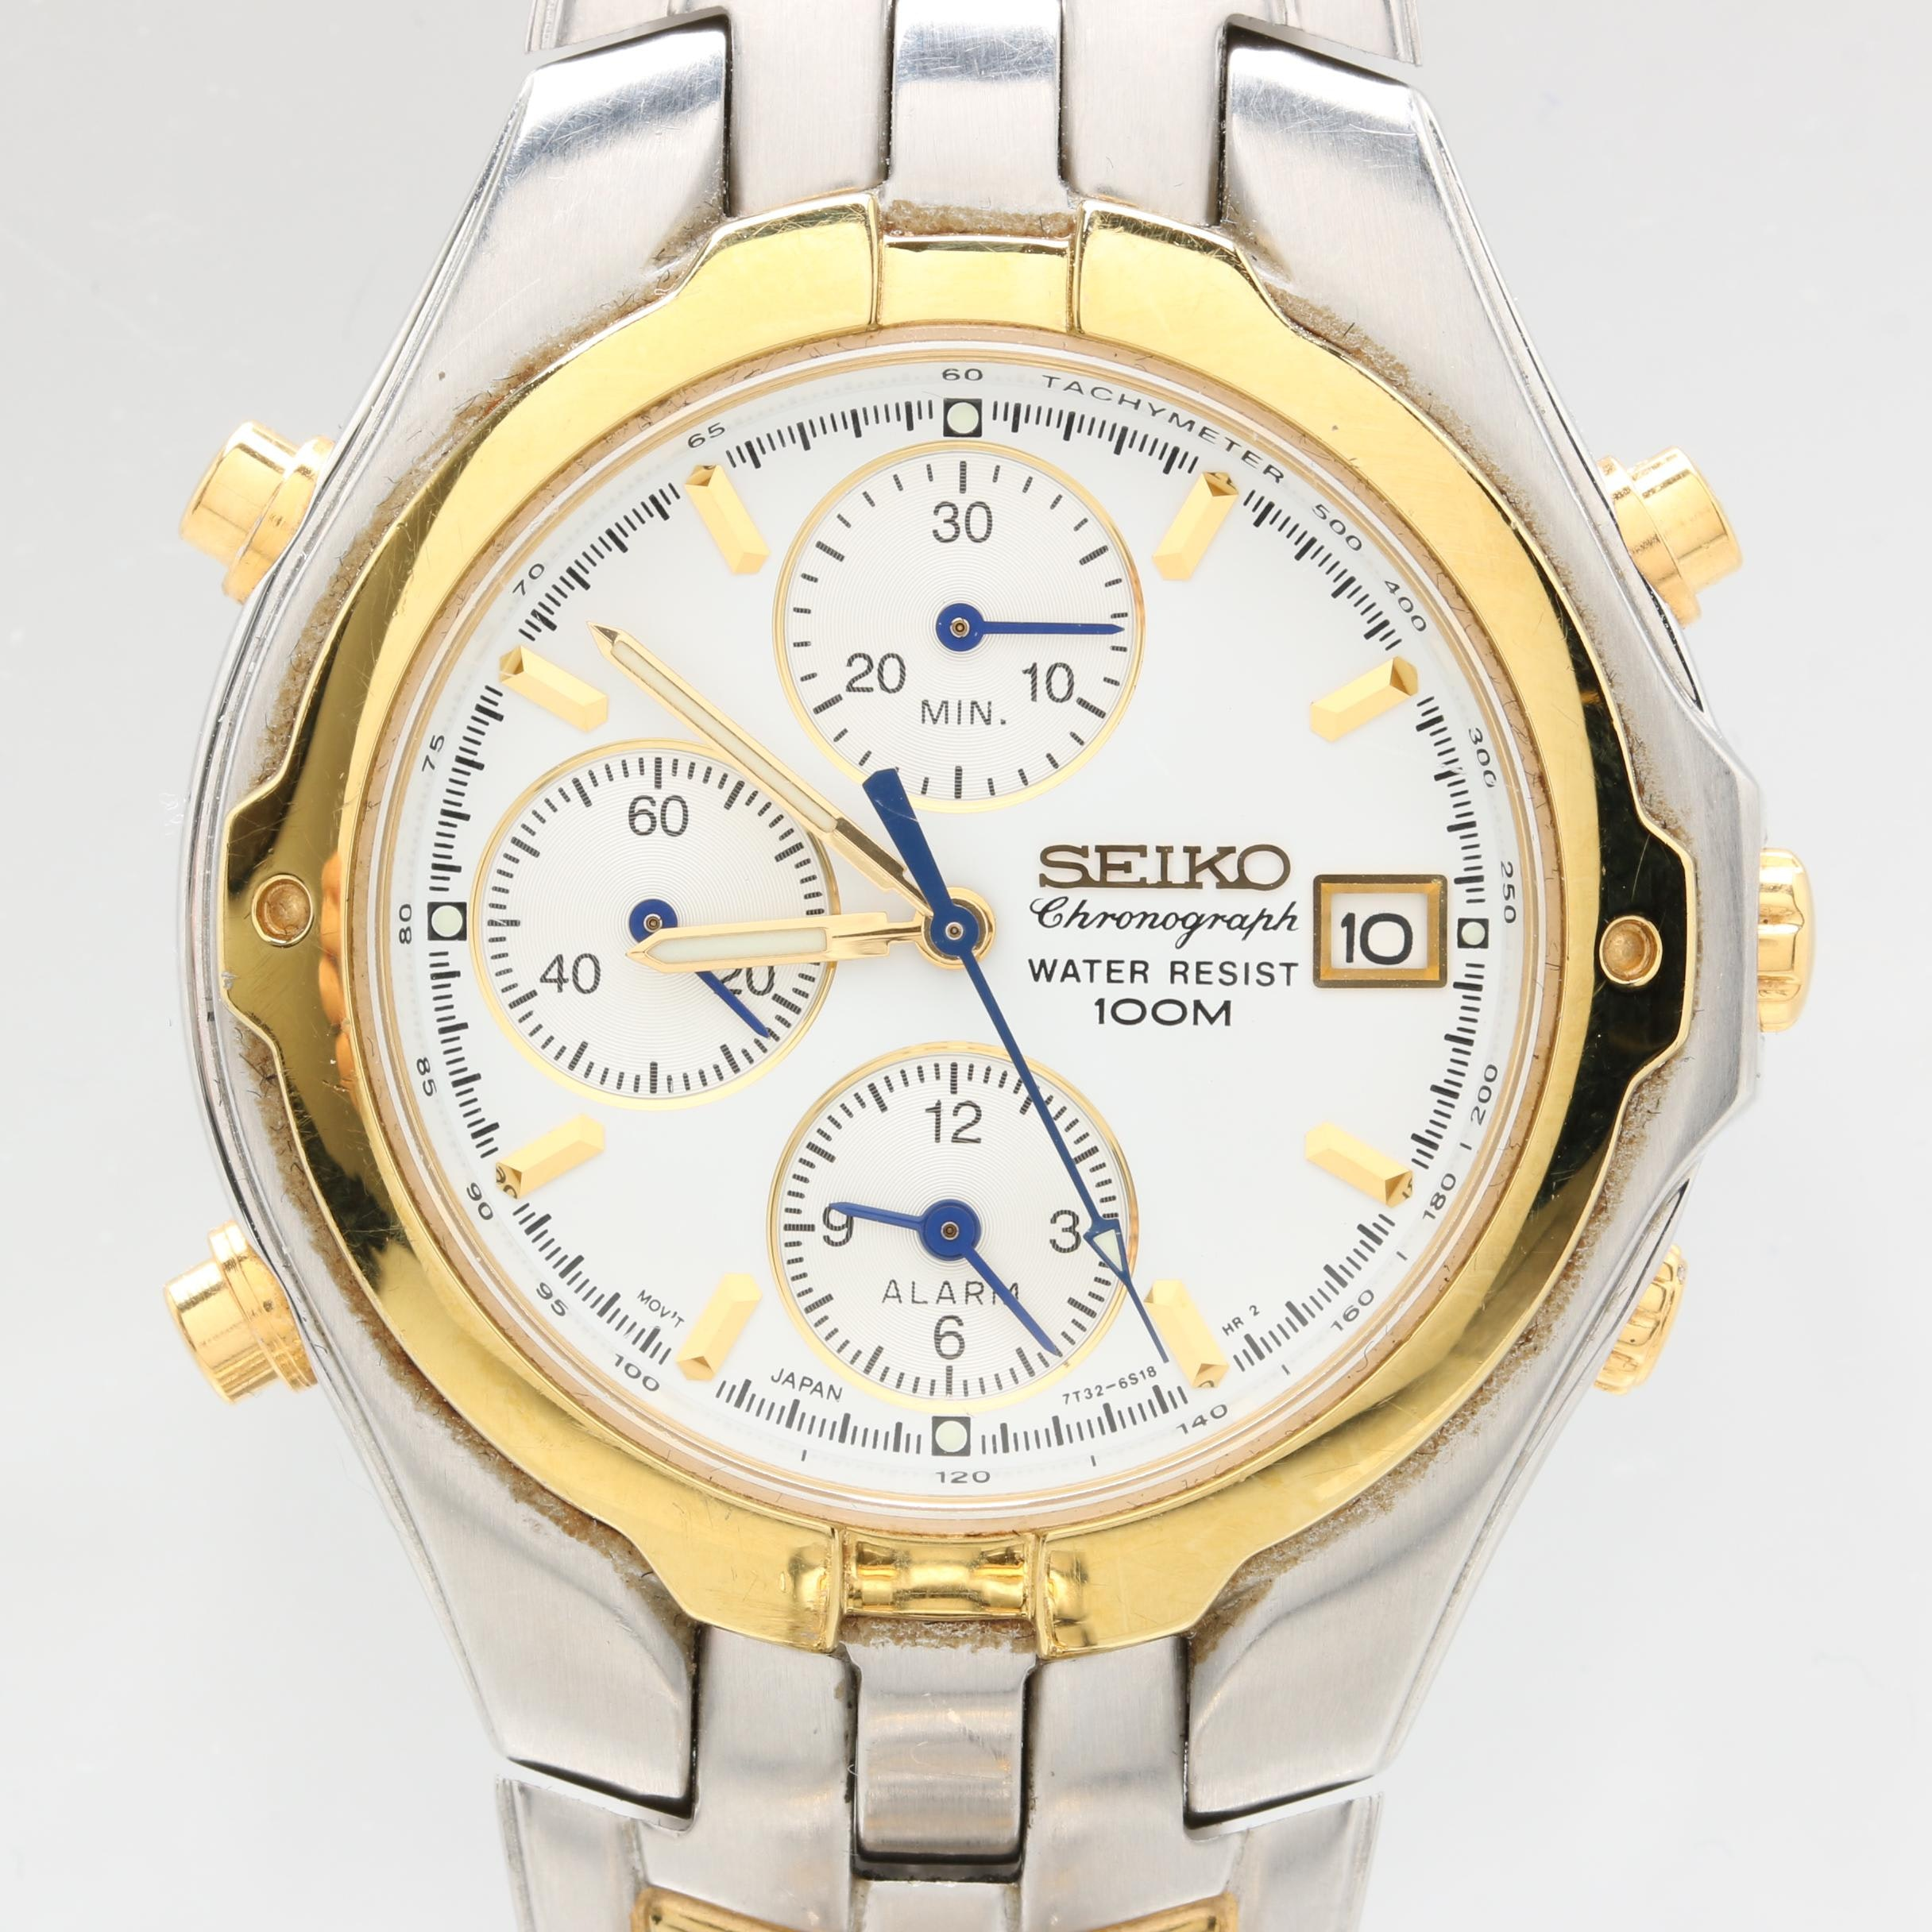 Seiko Chronograph Stainless Steel Wristwatch